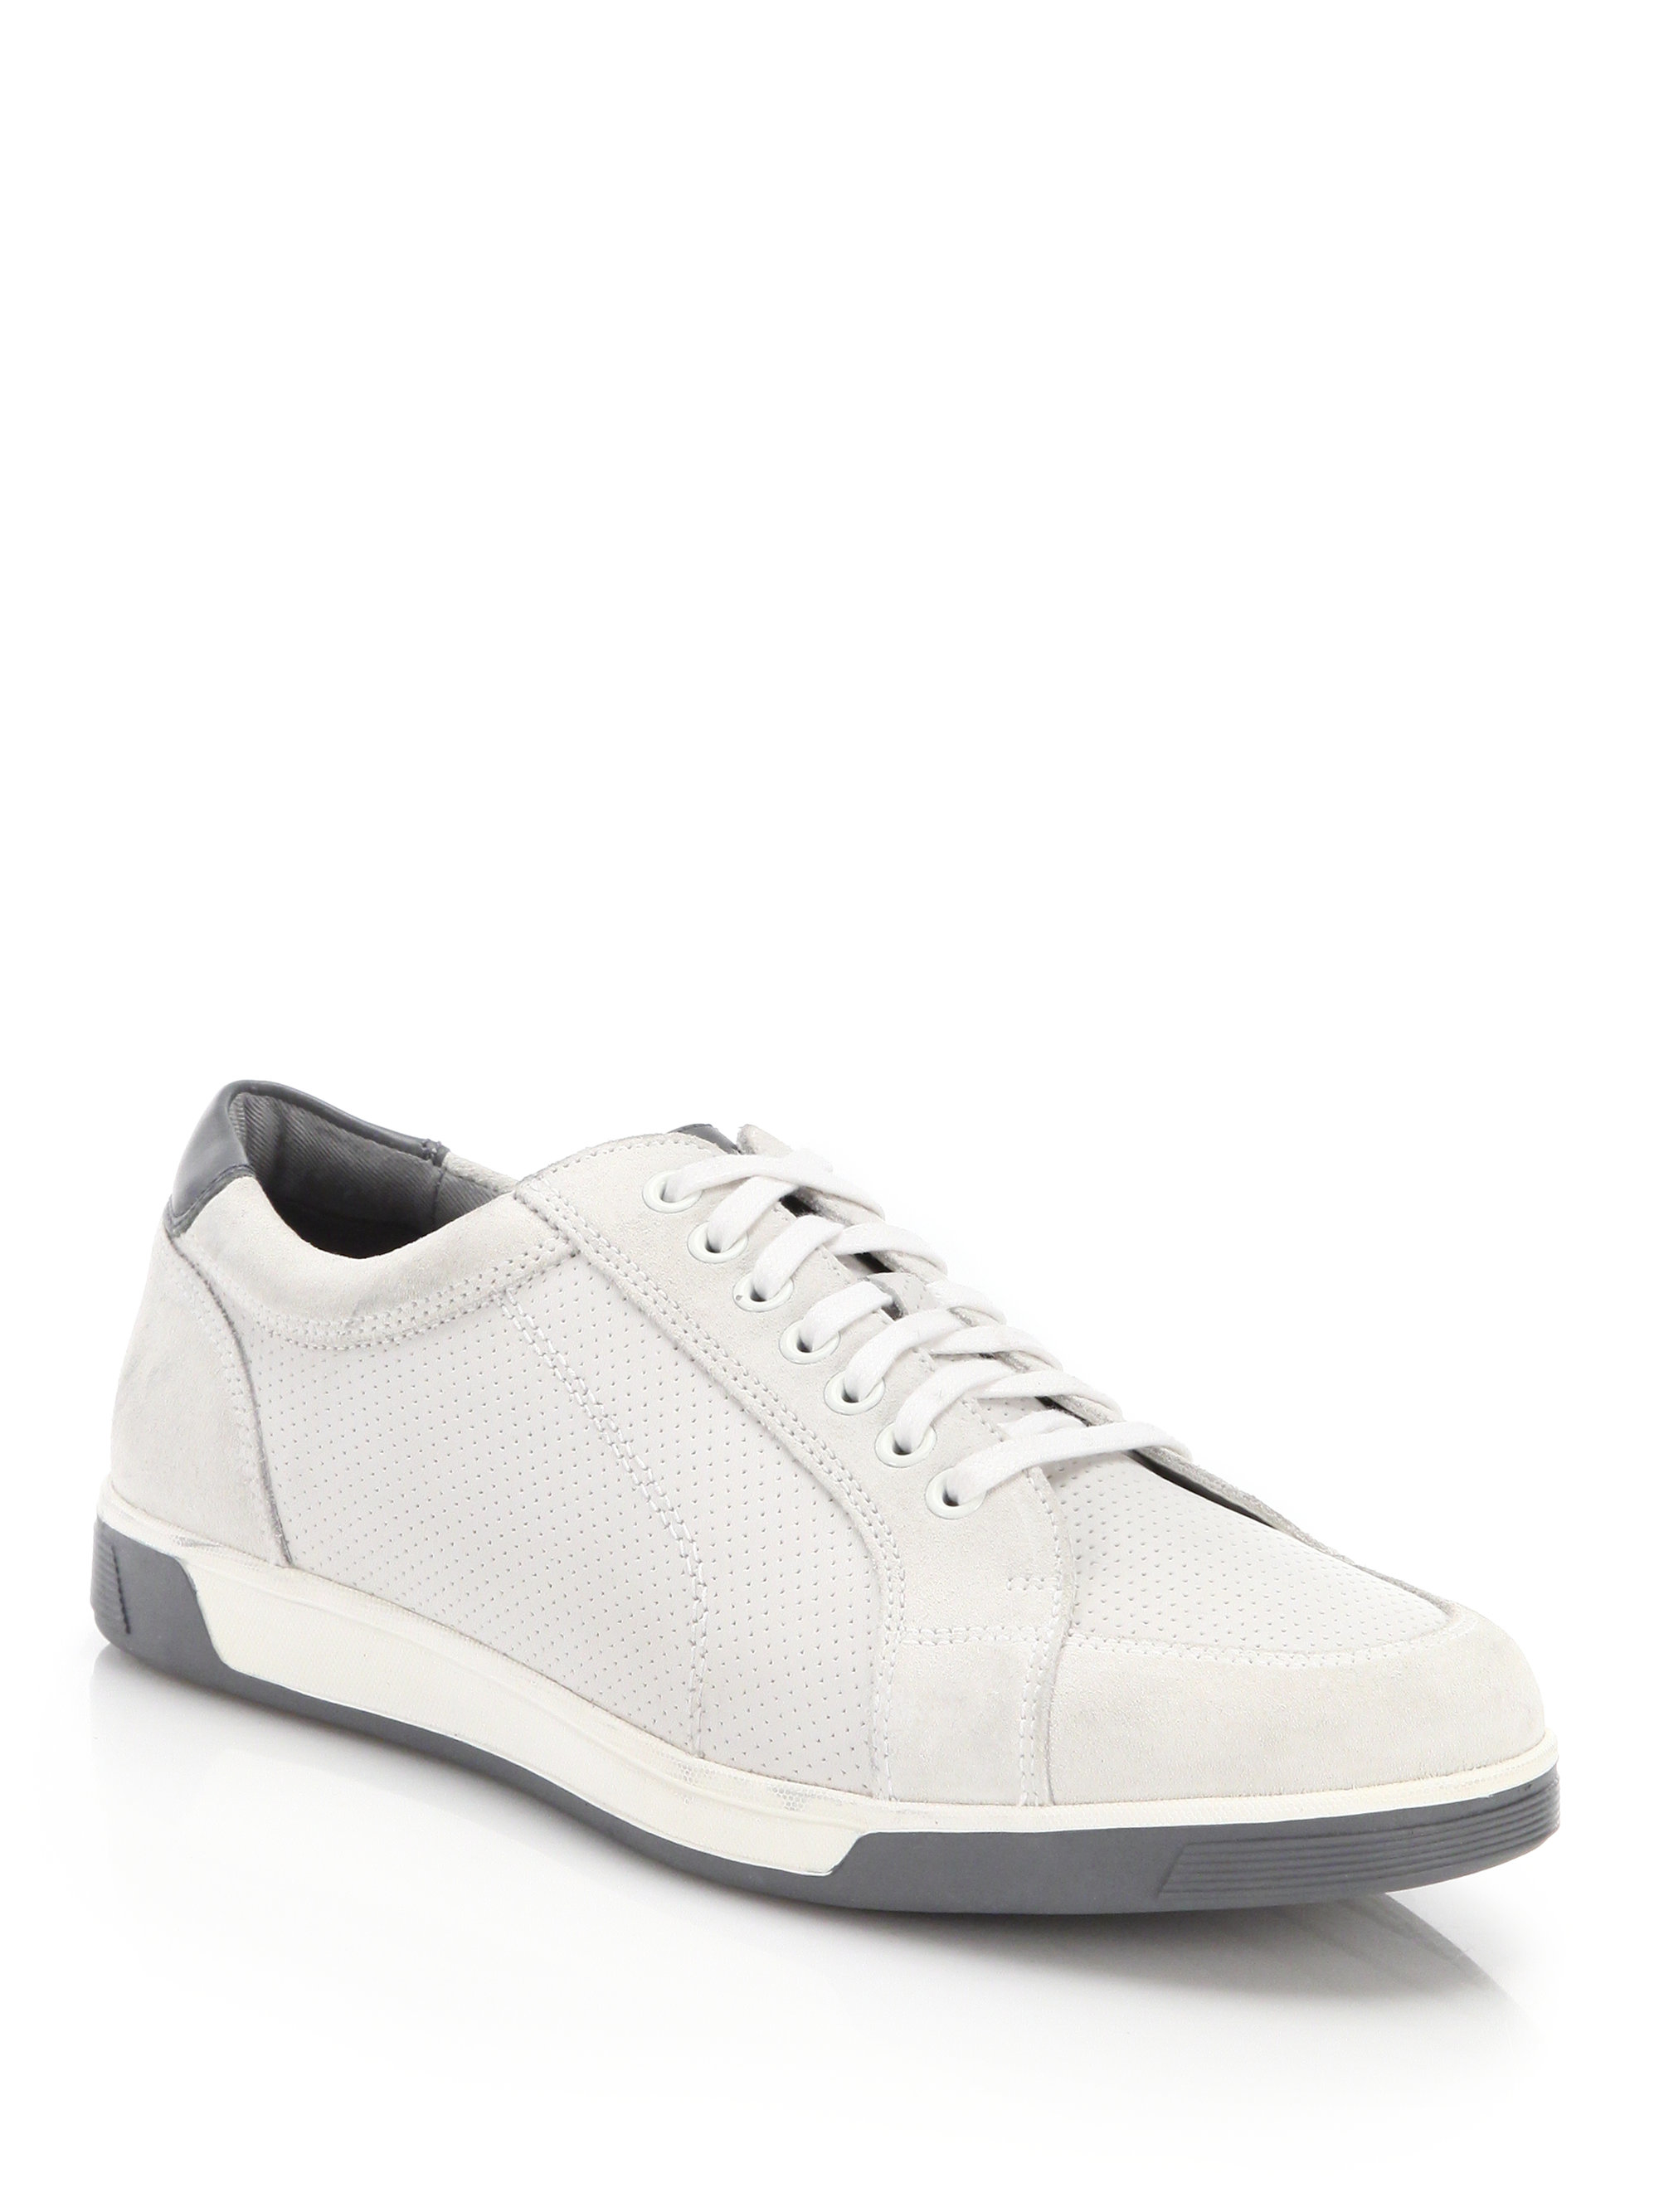 134027d25d2 Cole Haan Vartan Sport Leather & Suede Sneakers in White for Men - Lyst